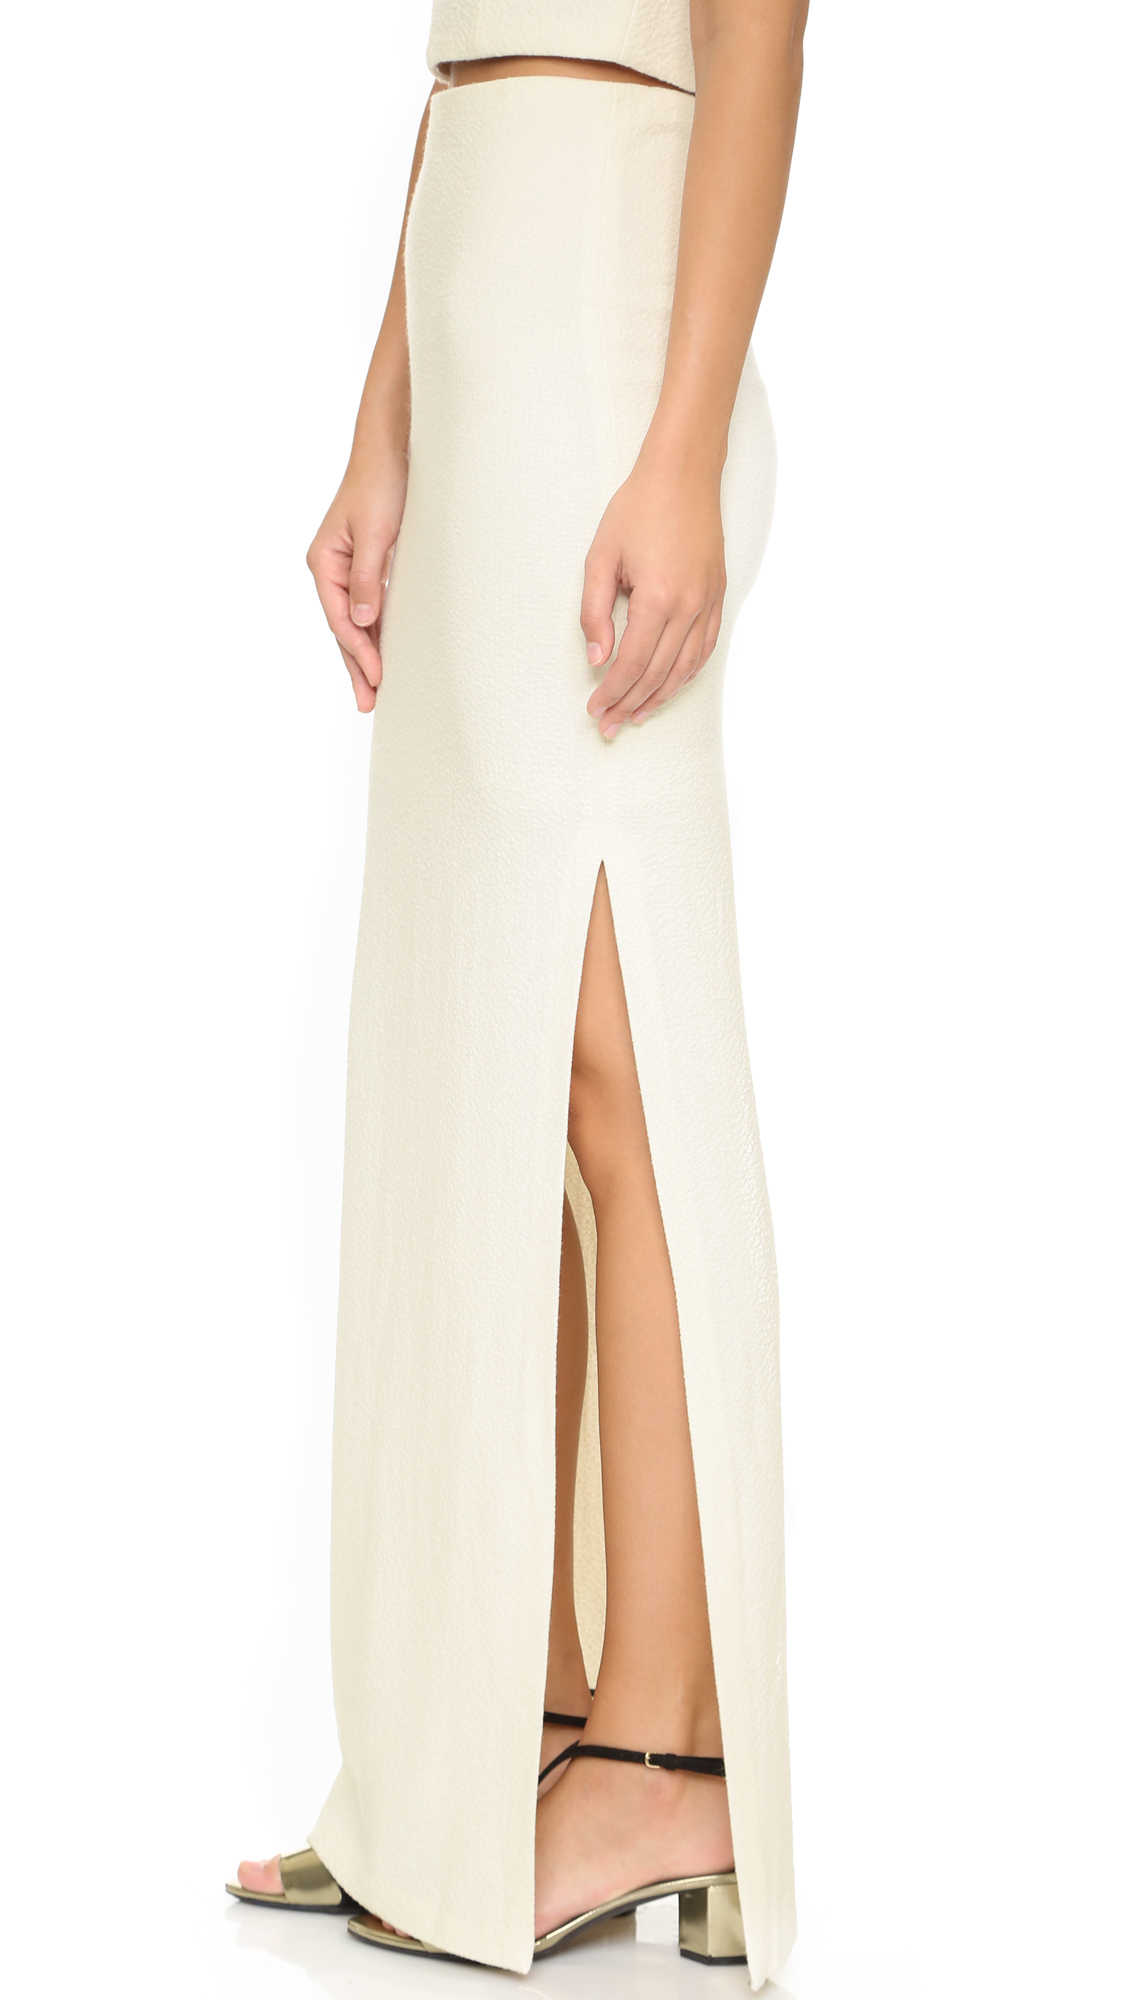 Alice   olivia Misha Fitted Maxi Skirt - Cream in Natural | Lyst